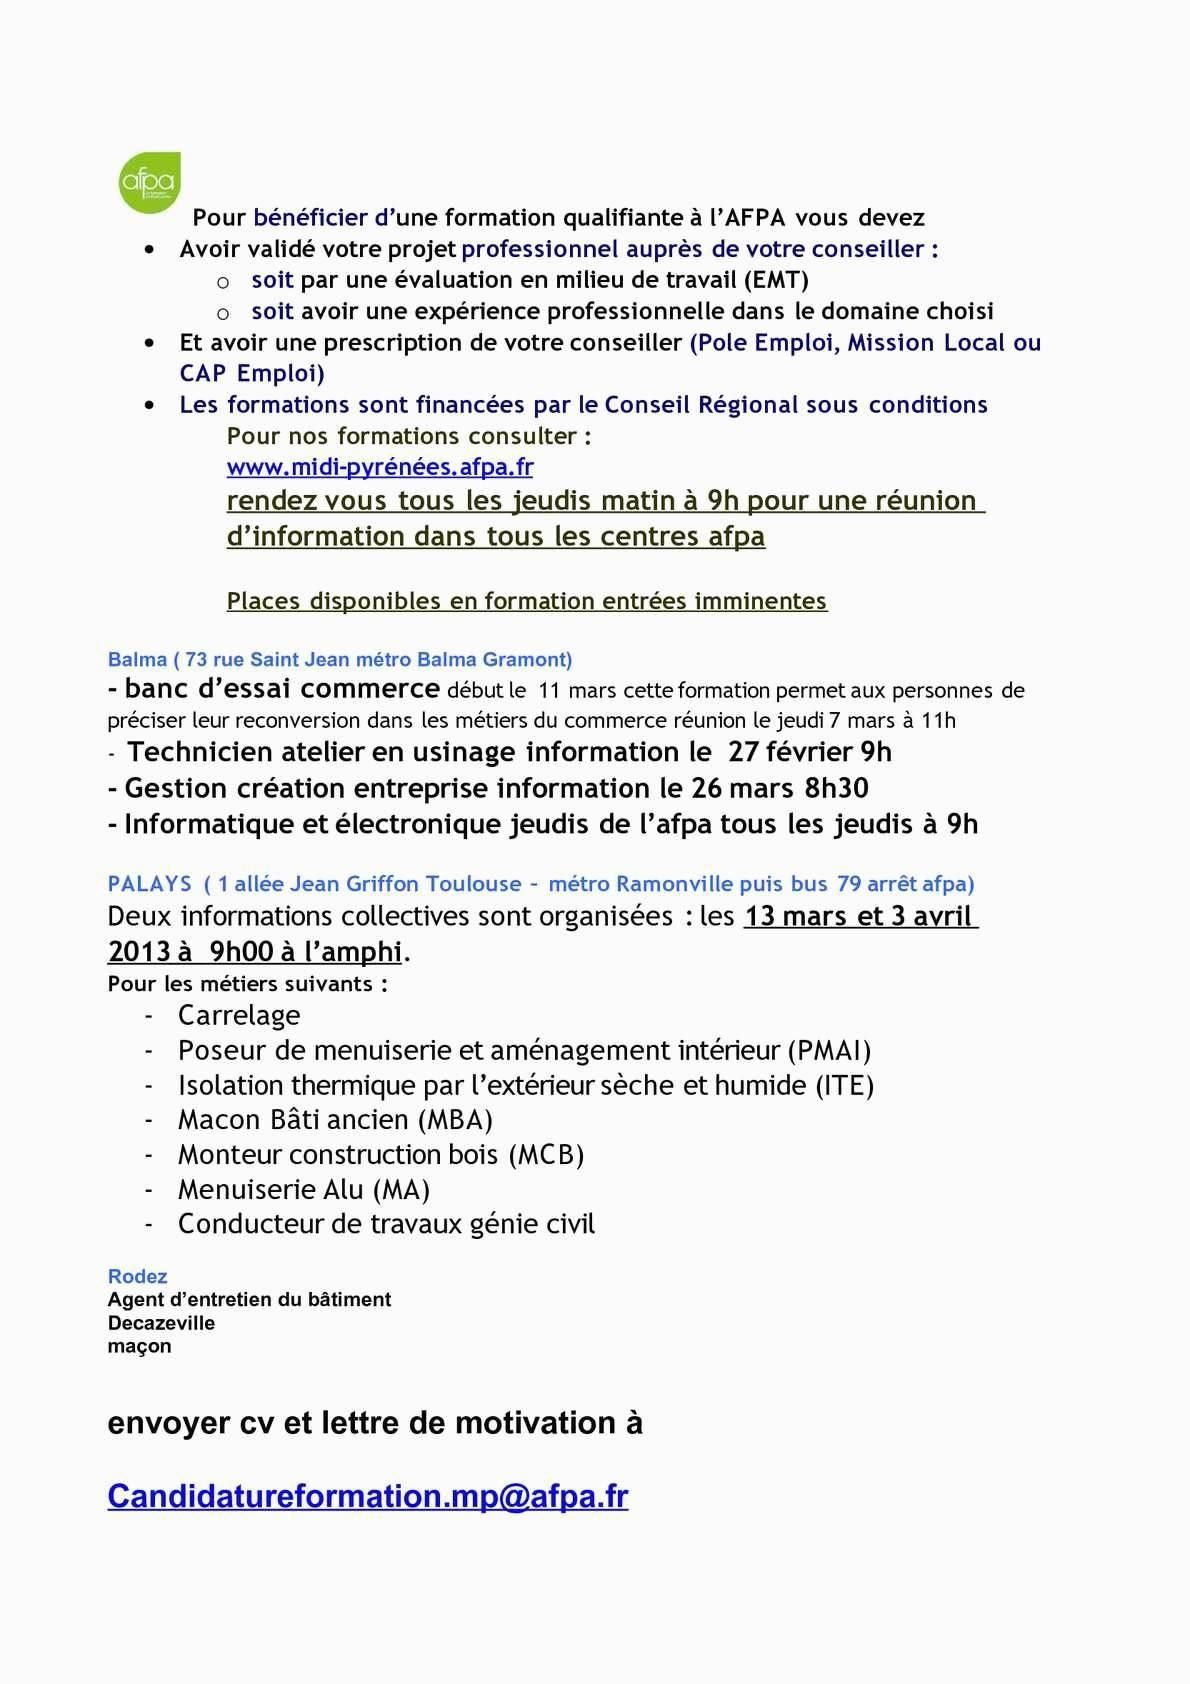 10 Lettre De Motivation Conducteur De Train Lettre De Motivation Modeles De Lettres Lettre A